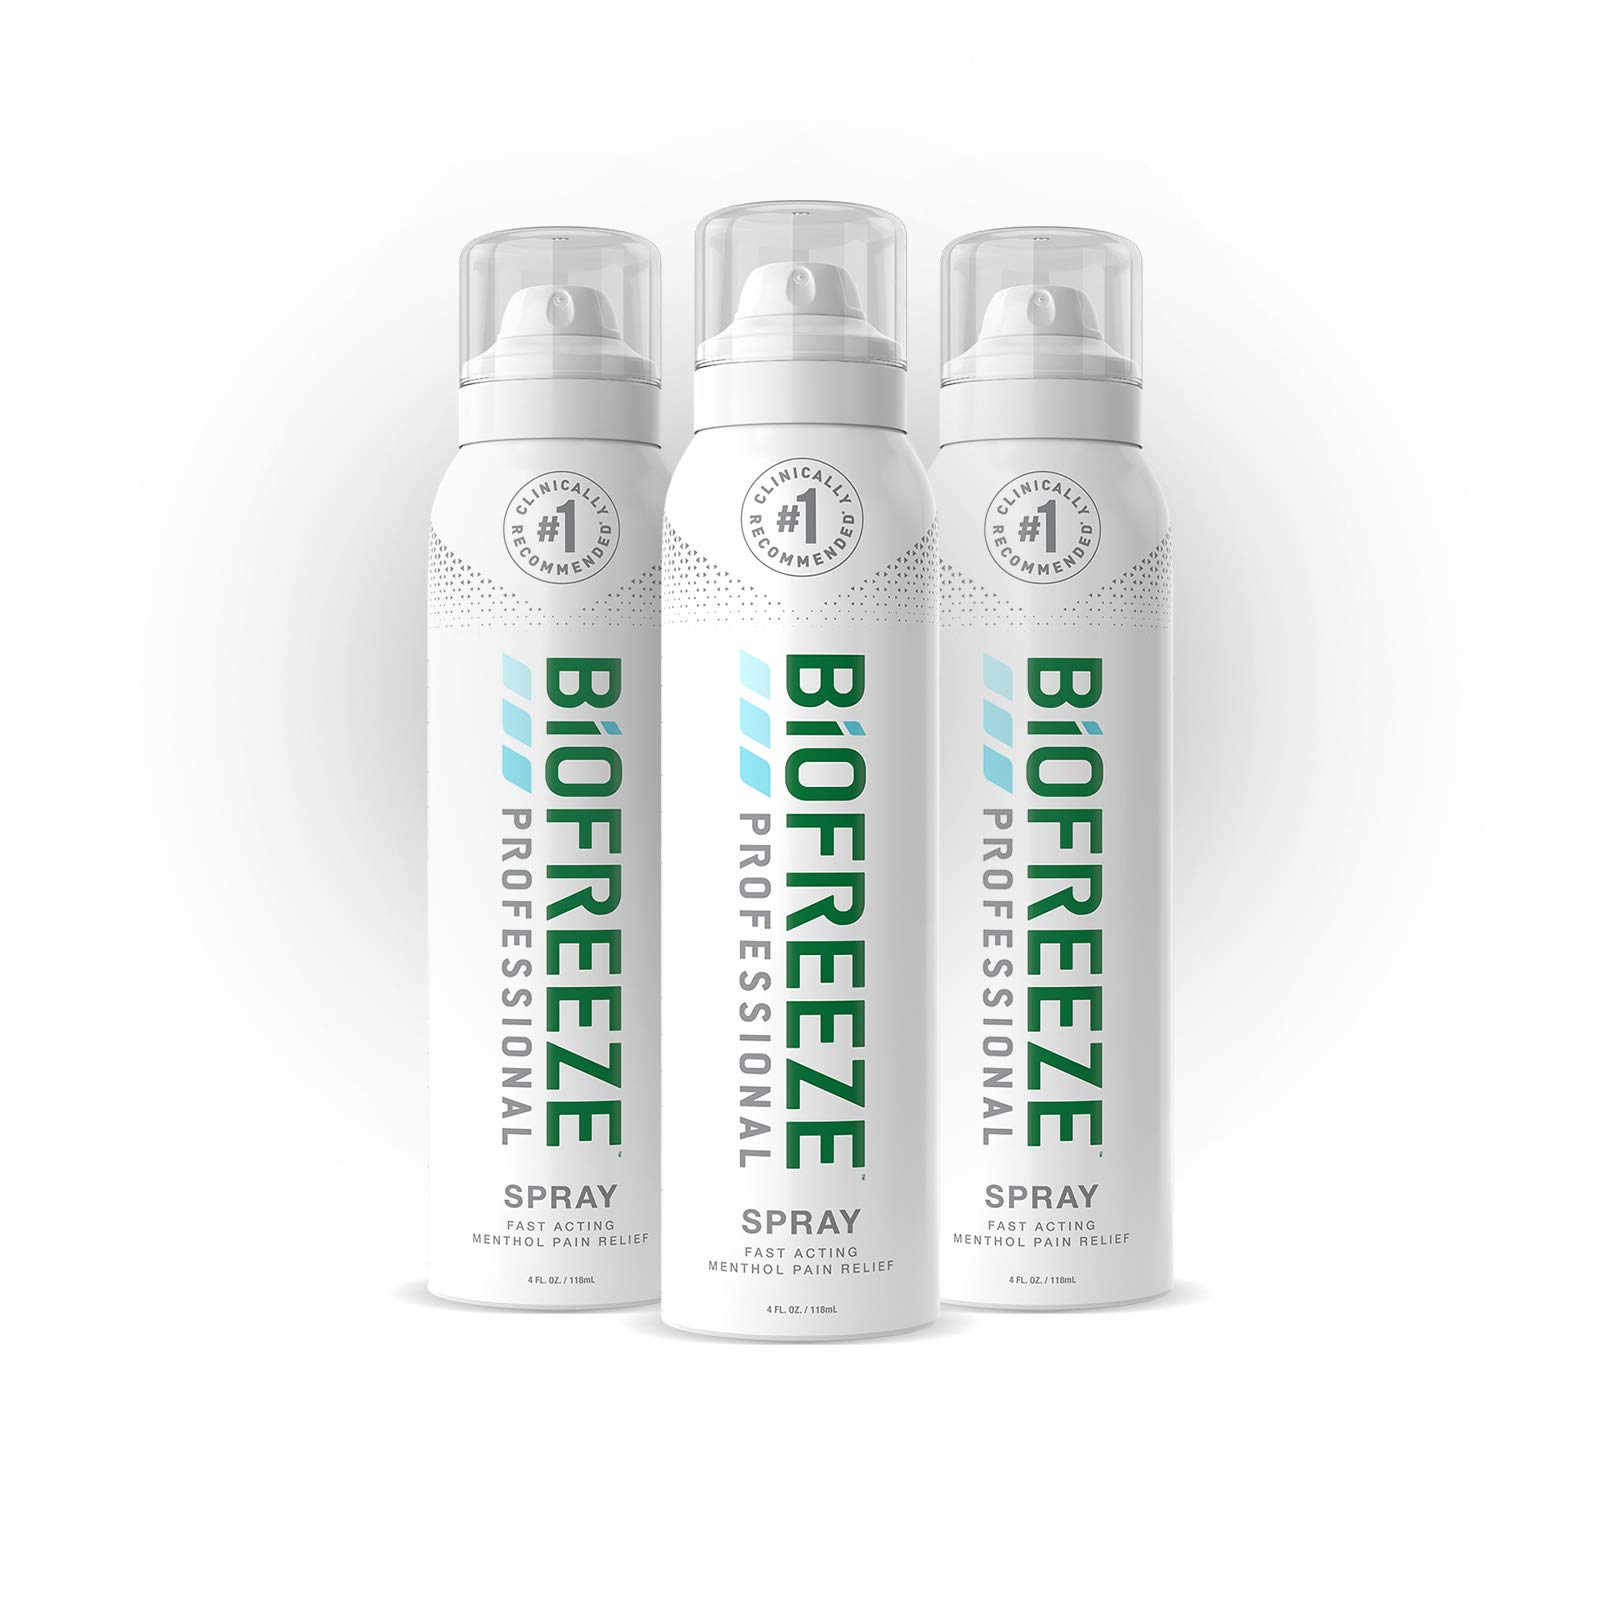 Biofreeze Professional Pain Relief Spray, 4 oz. Aerosol Spray, Colorless, Pack of 3 by Biofreeze